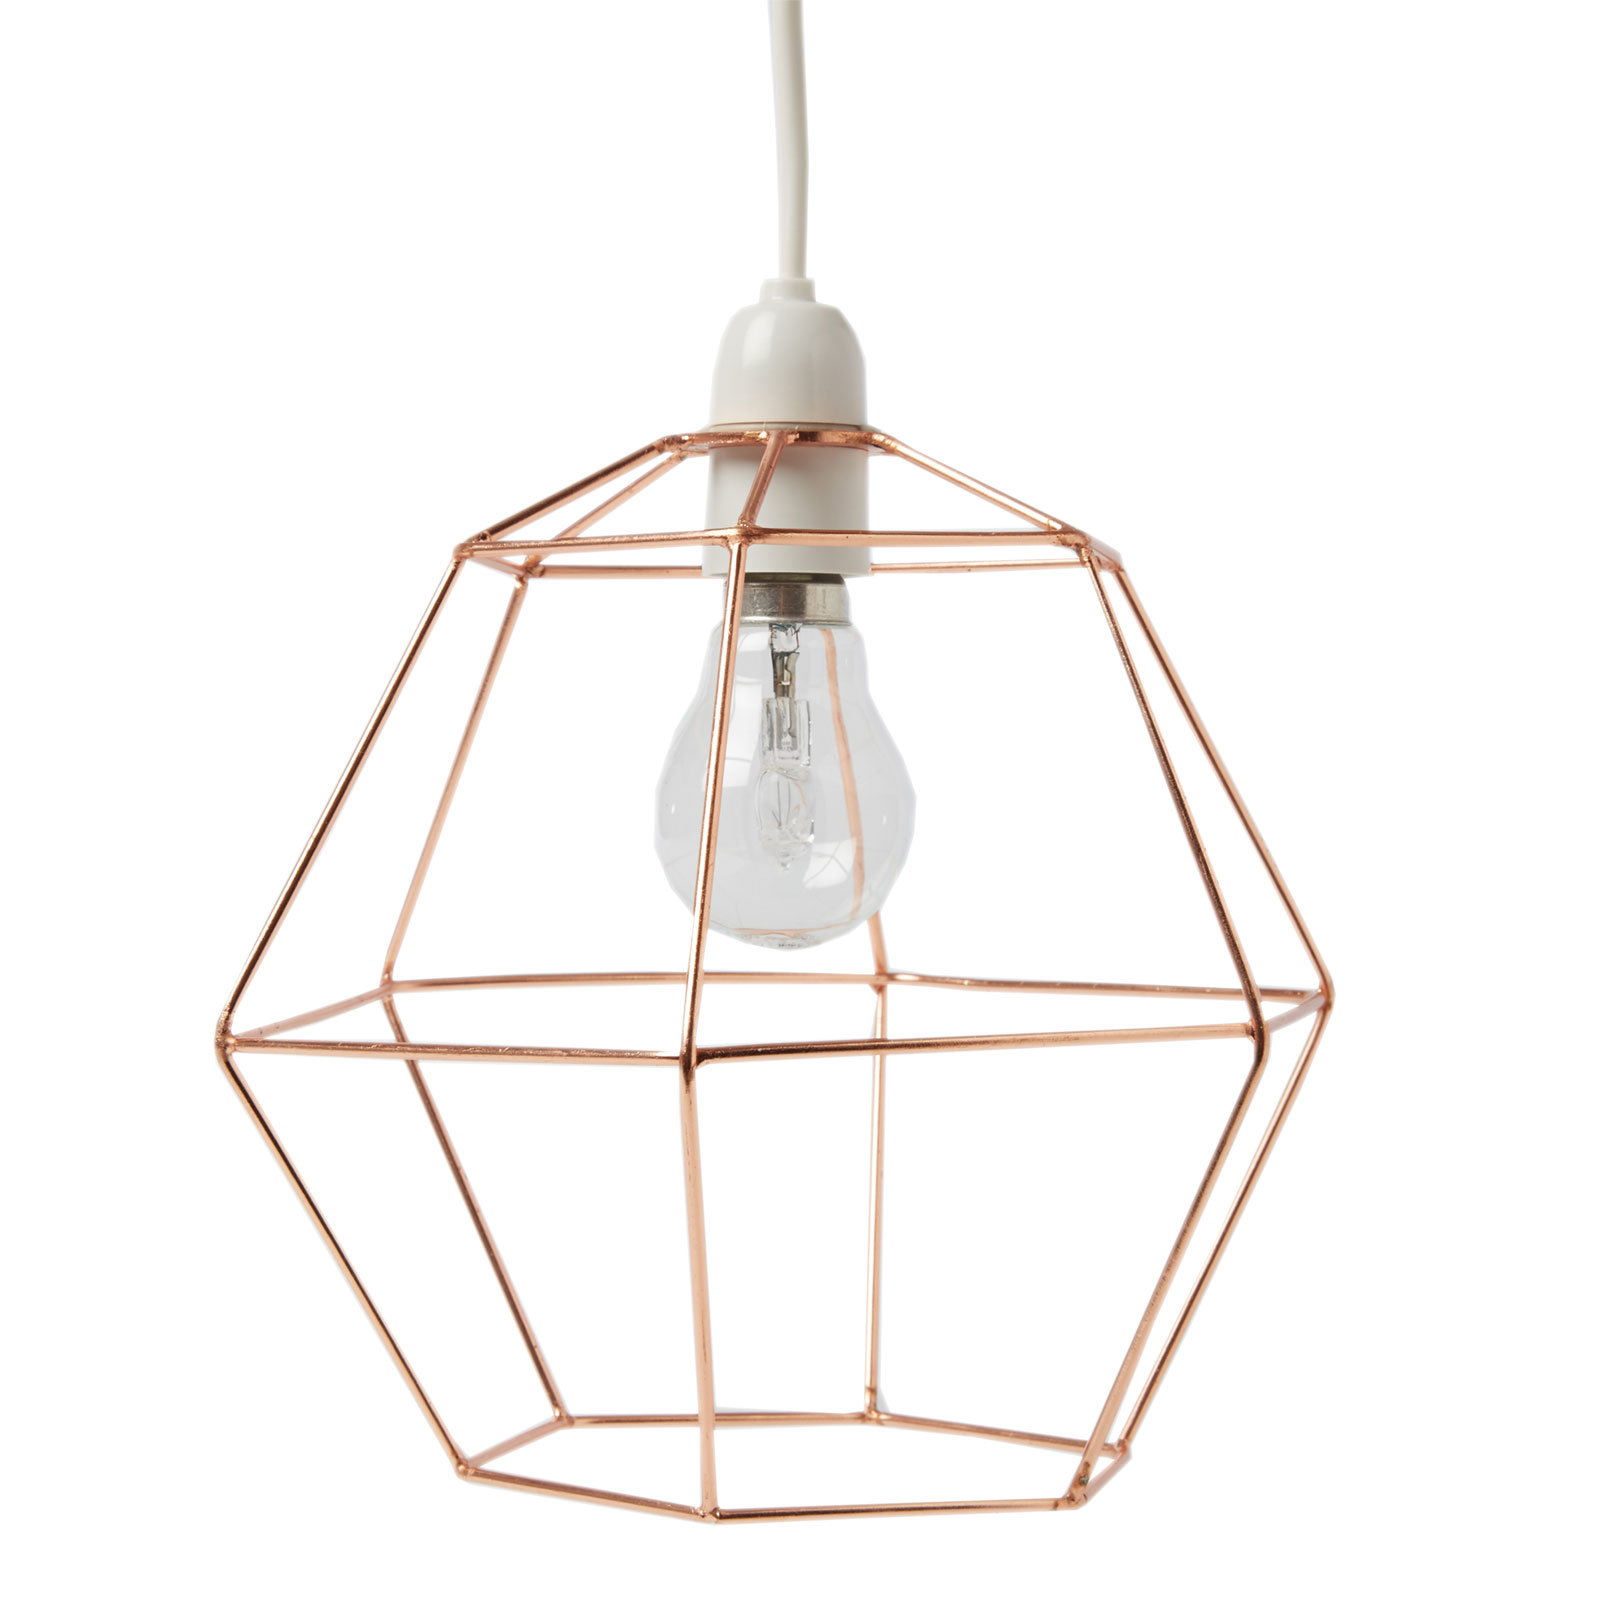 Lamp shade wire frames suppliers dolgular lamp shade wire frames suppliers dolgular greentooth Choice Image